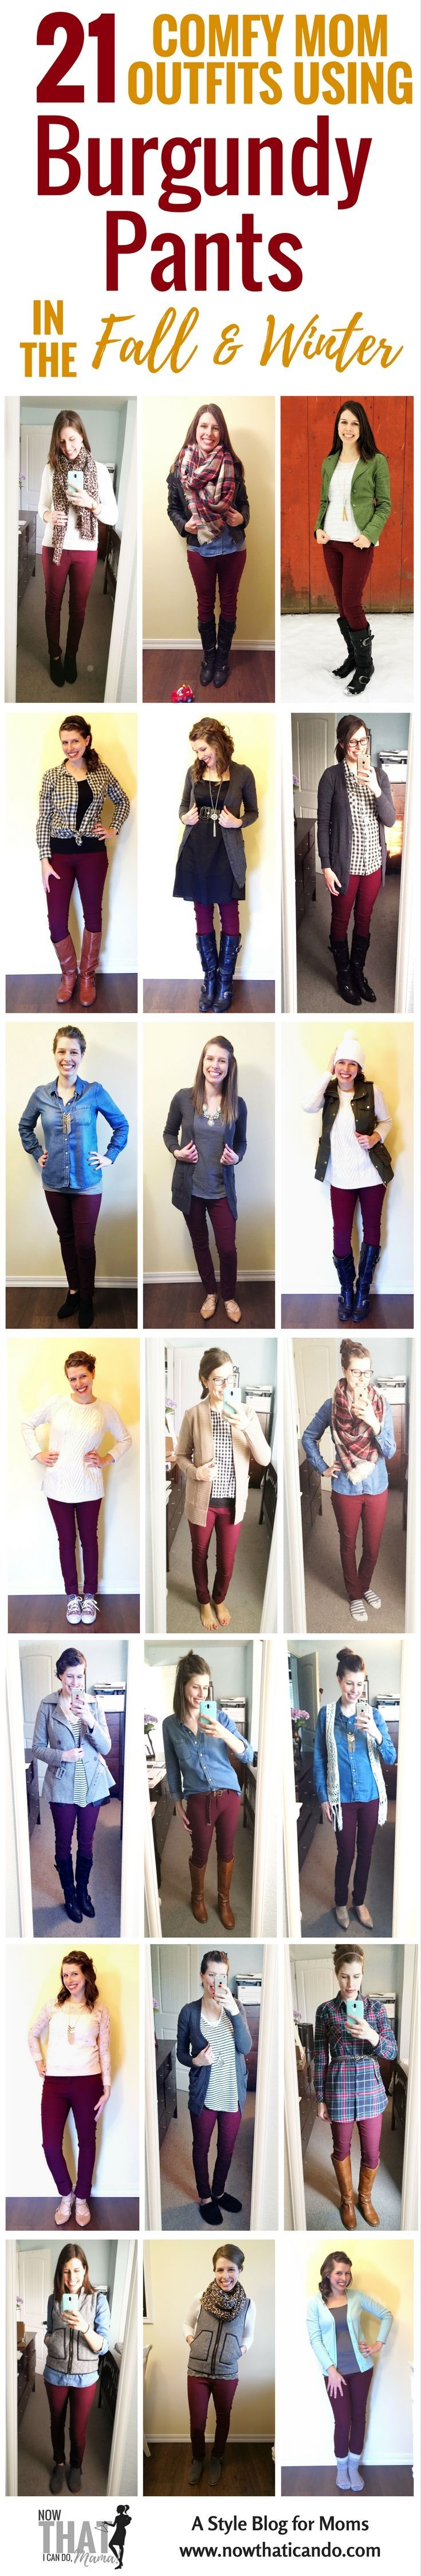 Are you a #mom and don't know what to wear with your wine #burgundy #pants? Here are 20 outfit ideas including infographics on colors, patterns, and shoes to style maroon/burgundy pants. Written with moms in mind! The blog post has lots of examples and gives this printable cheatsheet download for free! #style #outfits #winter #fall